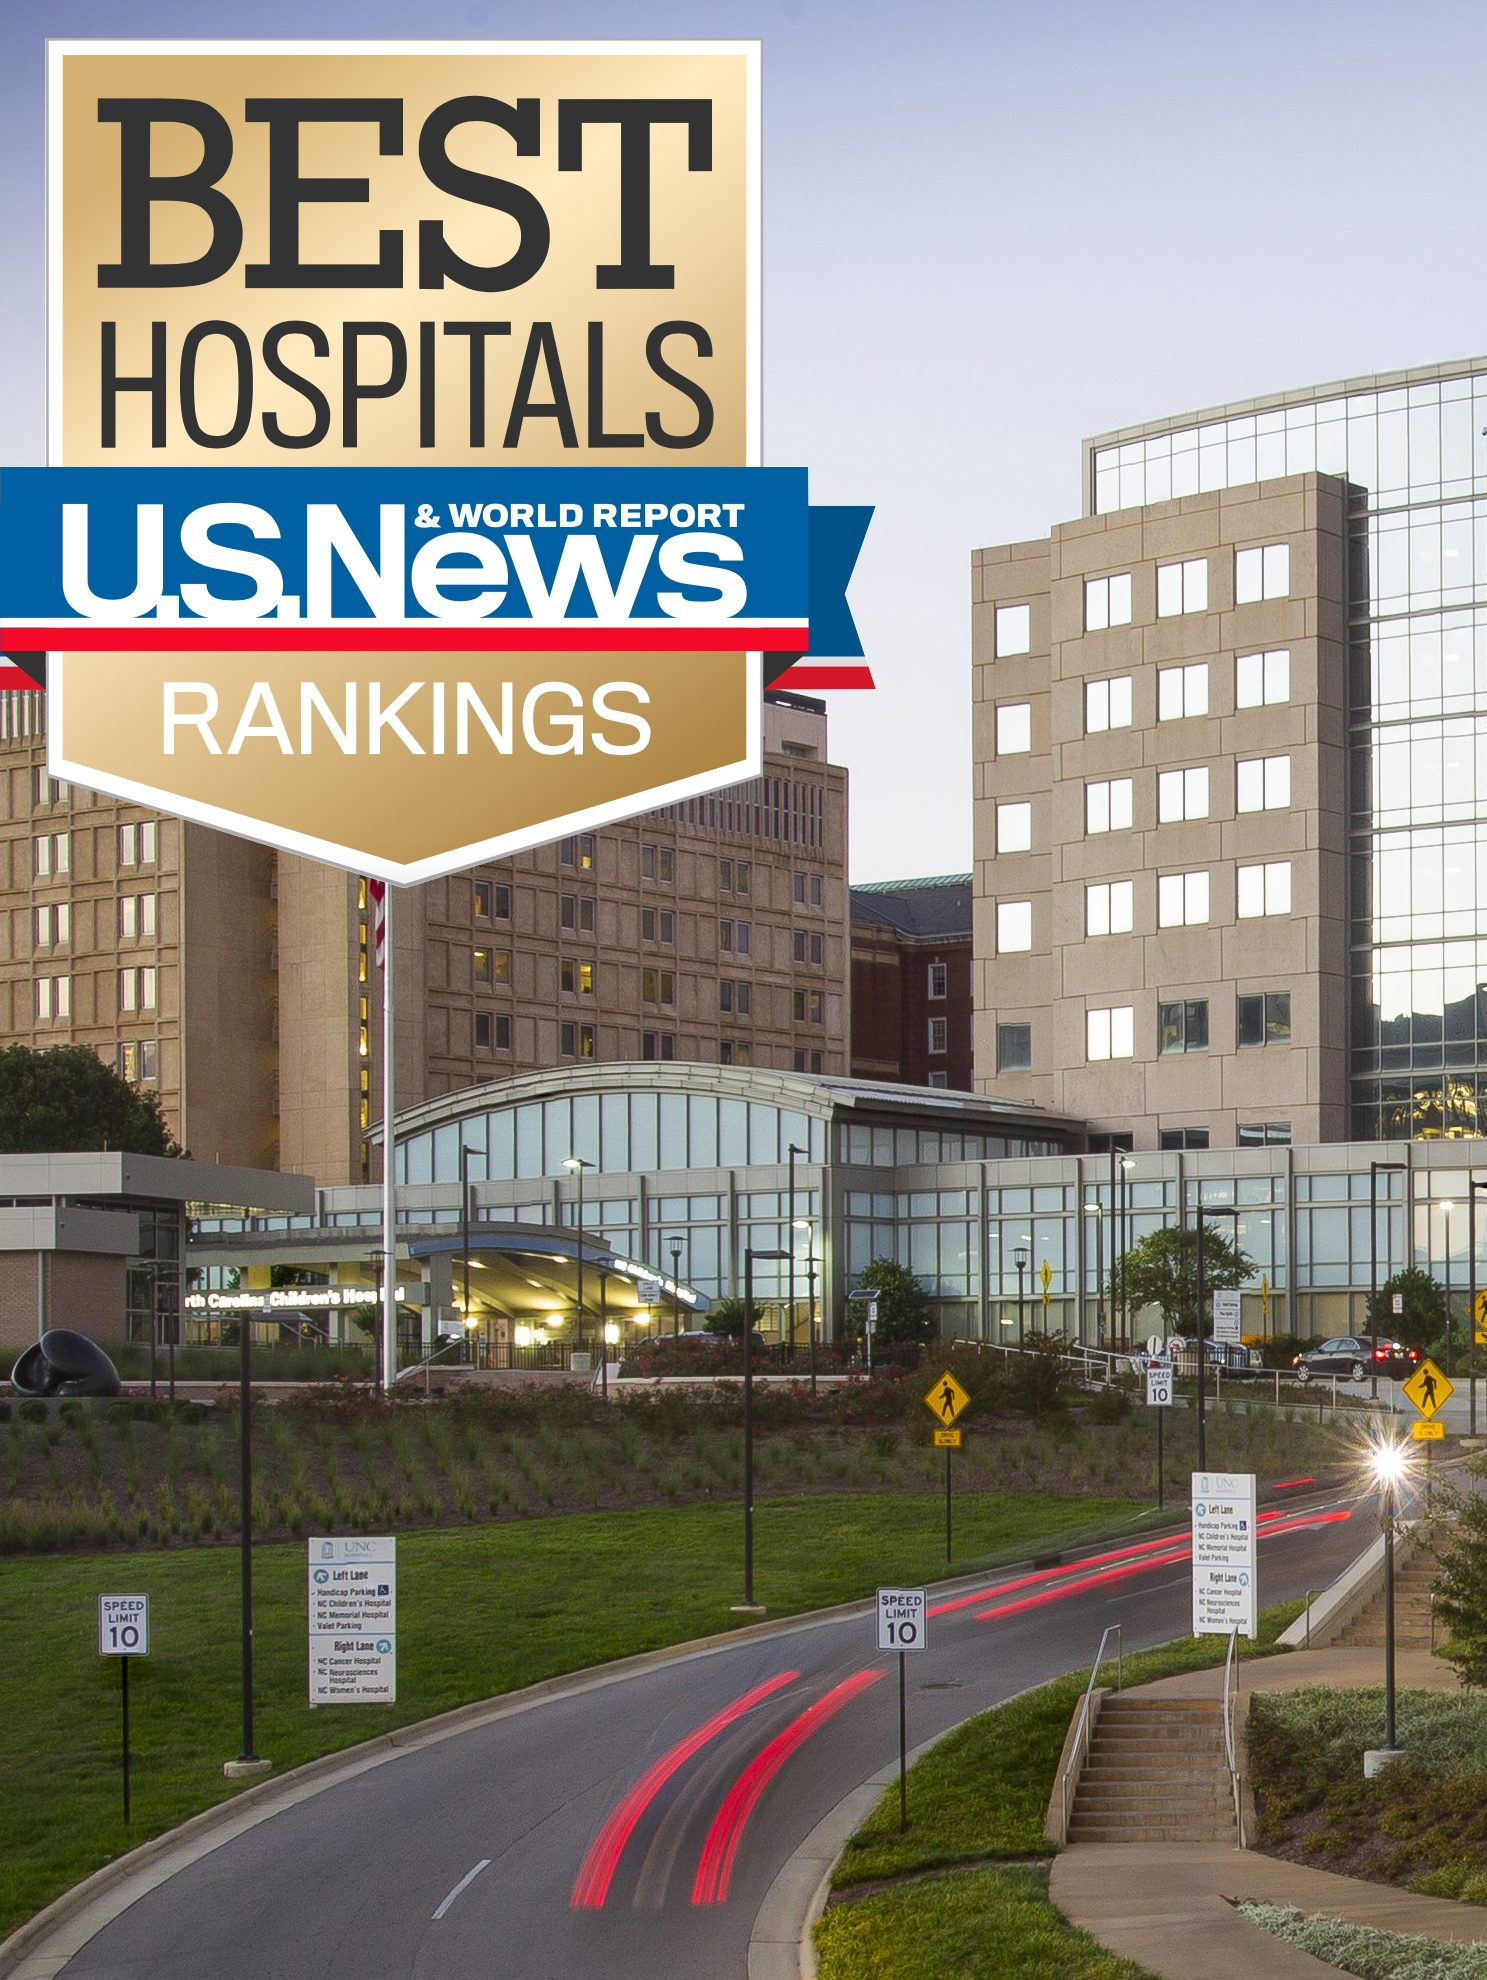 Pediatric Urology Program Ranked Among the Best in the Country